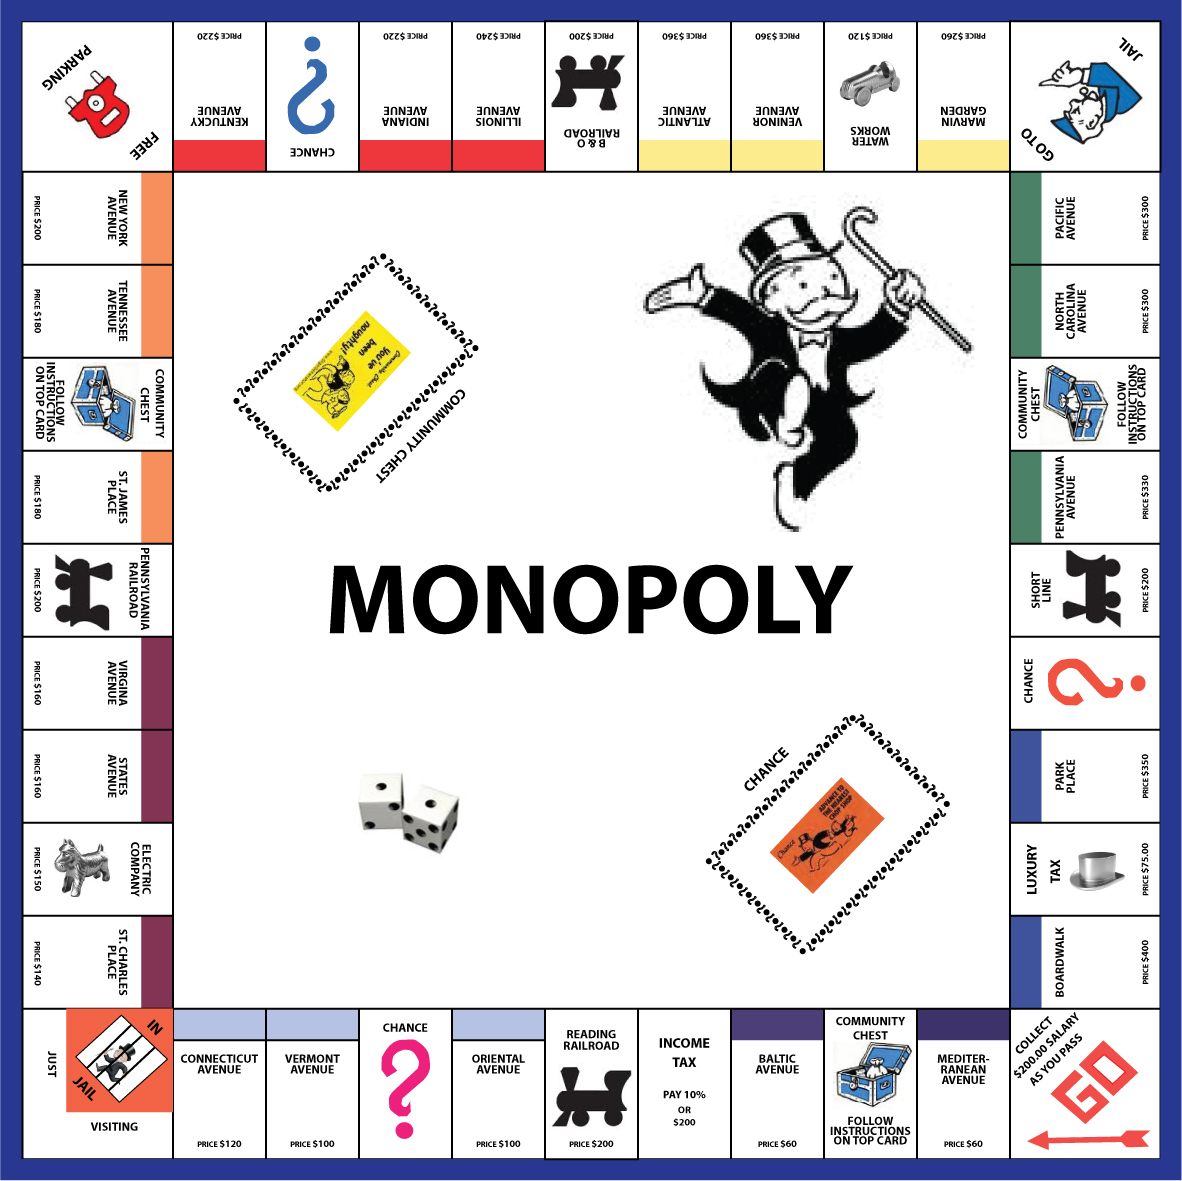 principles of economics understanding monopoly essay These classic lit quotes actually mean the complete opposite of what you always thought.